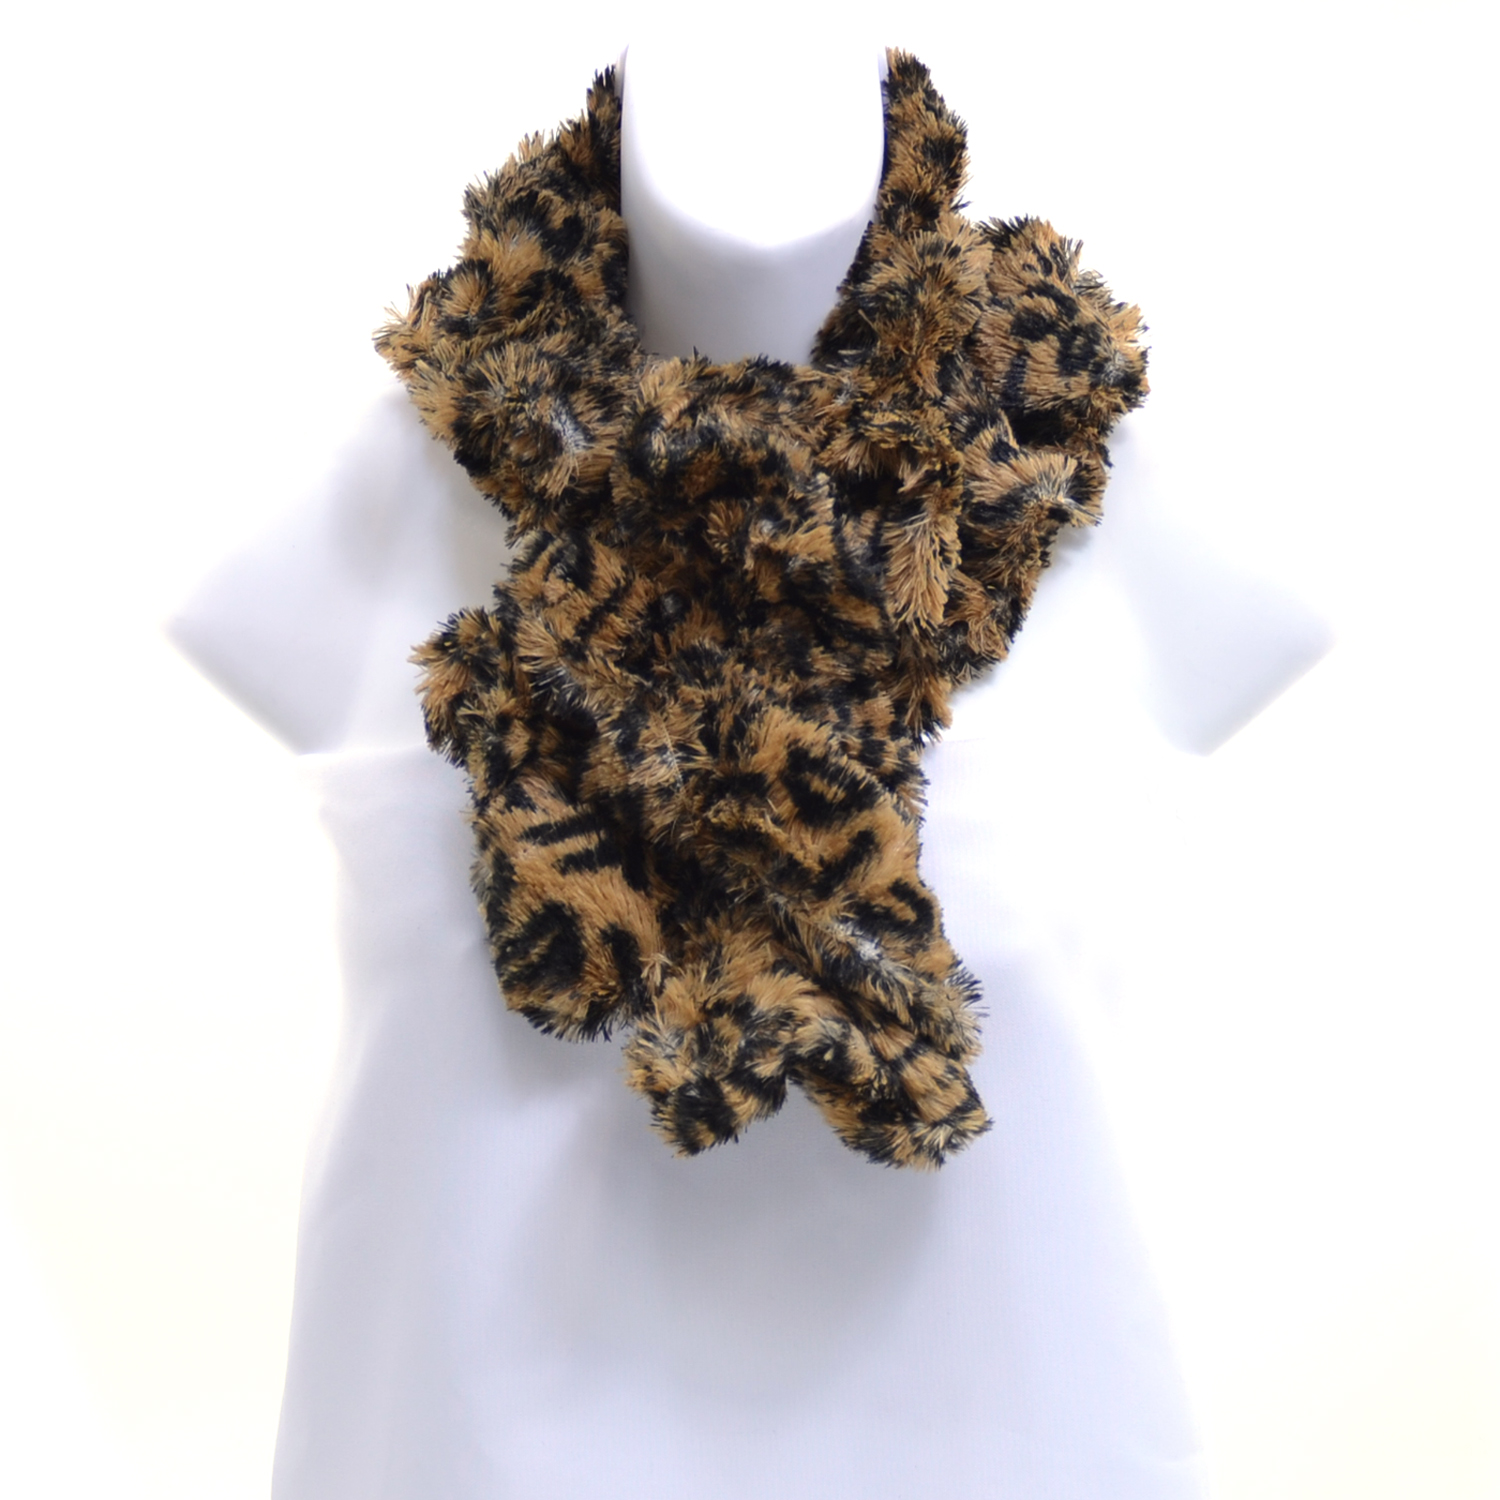 Leopard Design Faux Fur Boa Fashion Scarf - Brown/Black